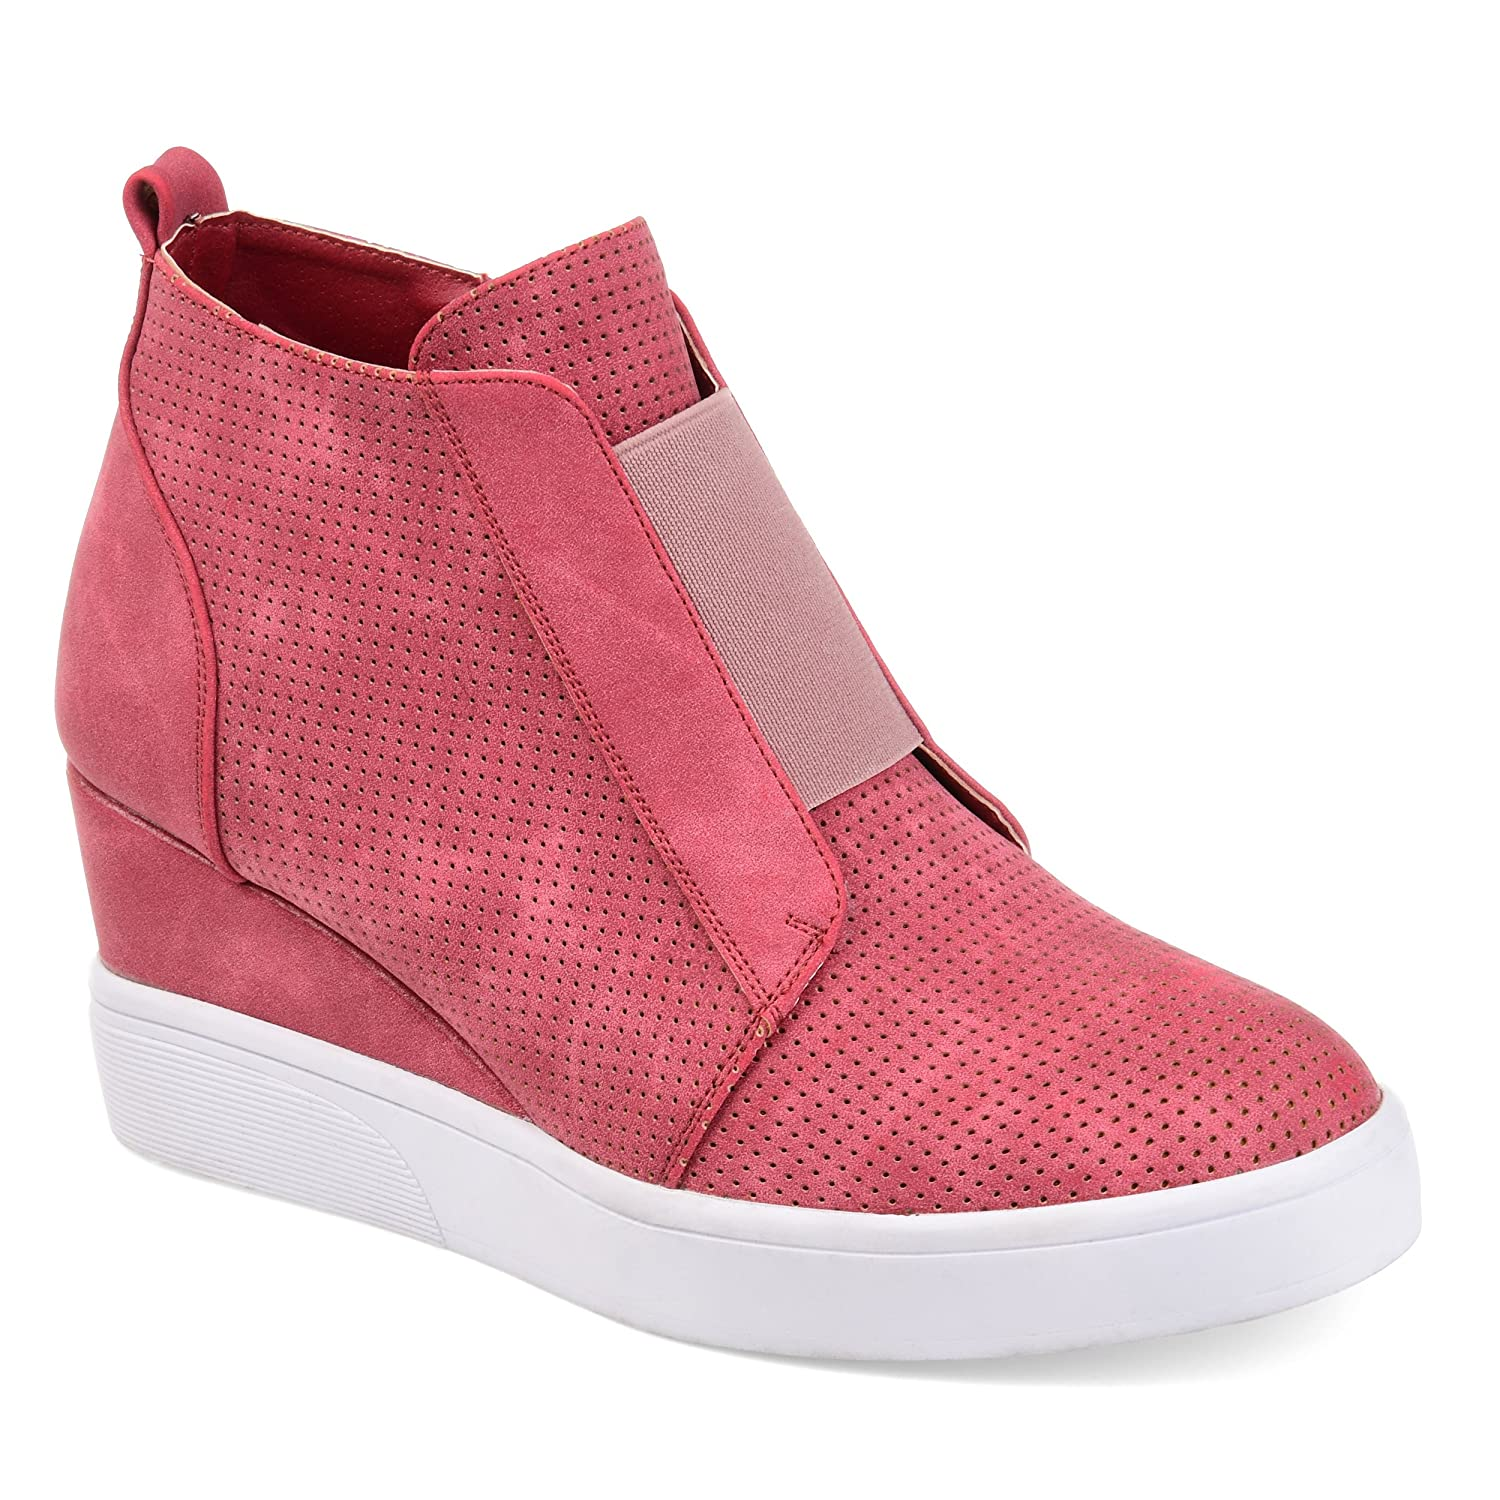 Journee Collection Womens Athleisure Laser-Cut Side-Zip Sneaker Wedges B07CBKP969 9.5 B(M) US|Pink